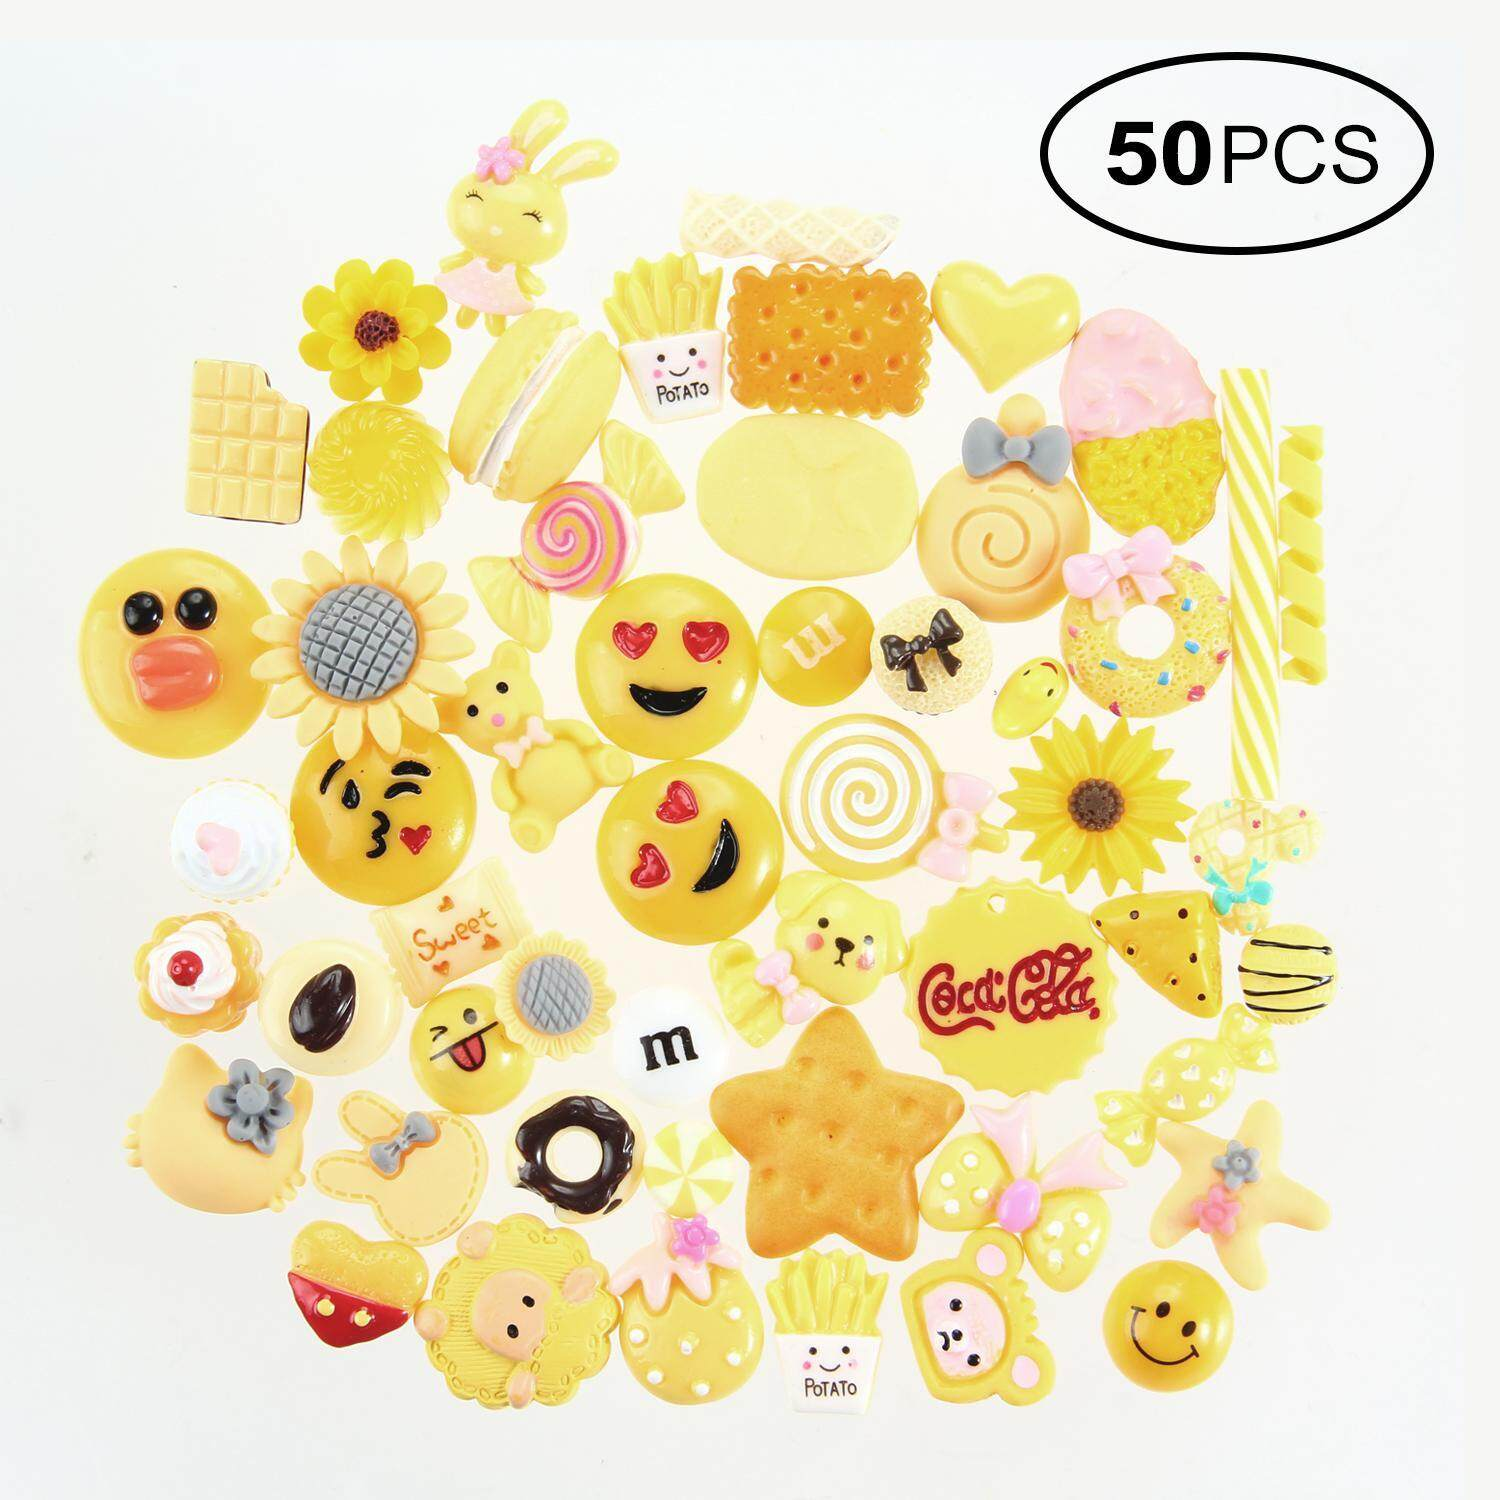 Aolvo 50 Pieces Slime Charms Mixed Candy Sweets Slime Beads Making Supplies For Scrapbooking Diy Crafts - Intl By Aolvo.